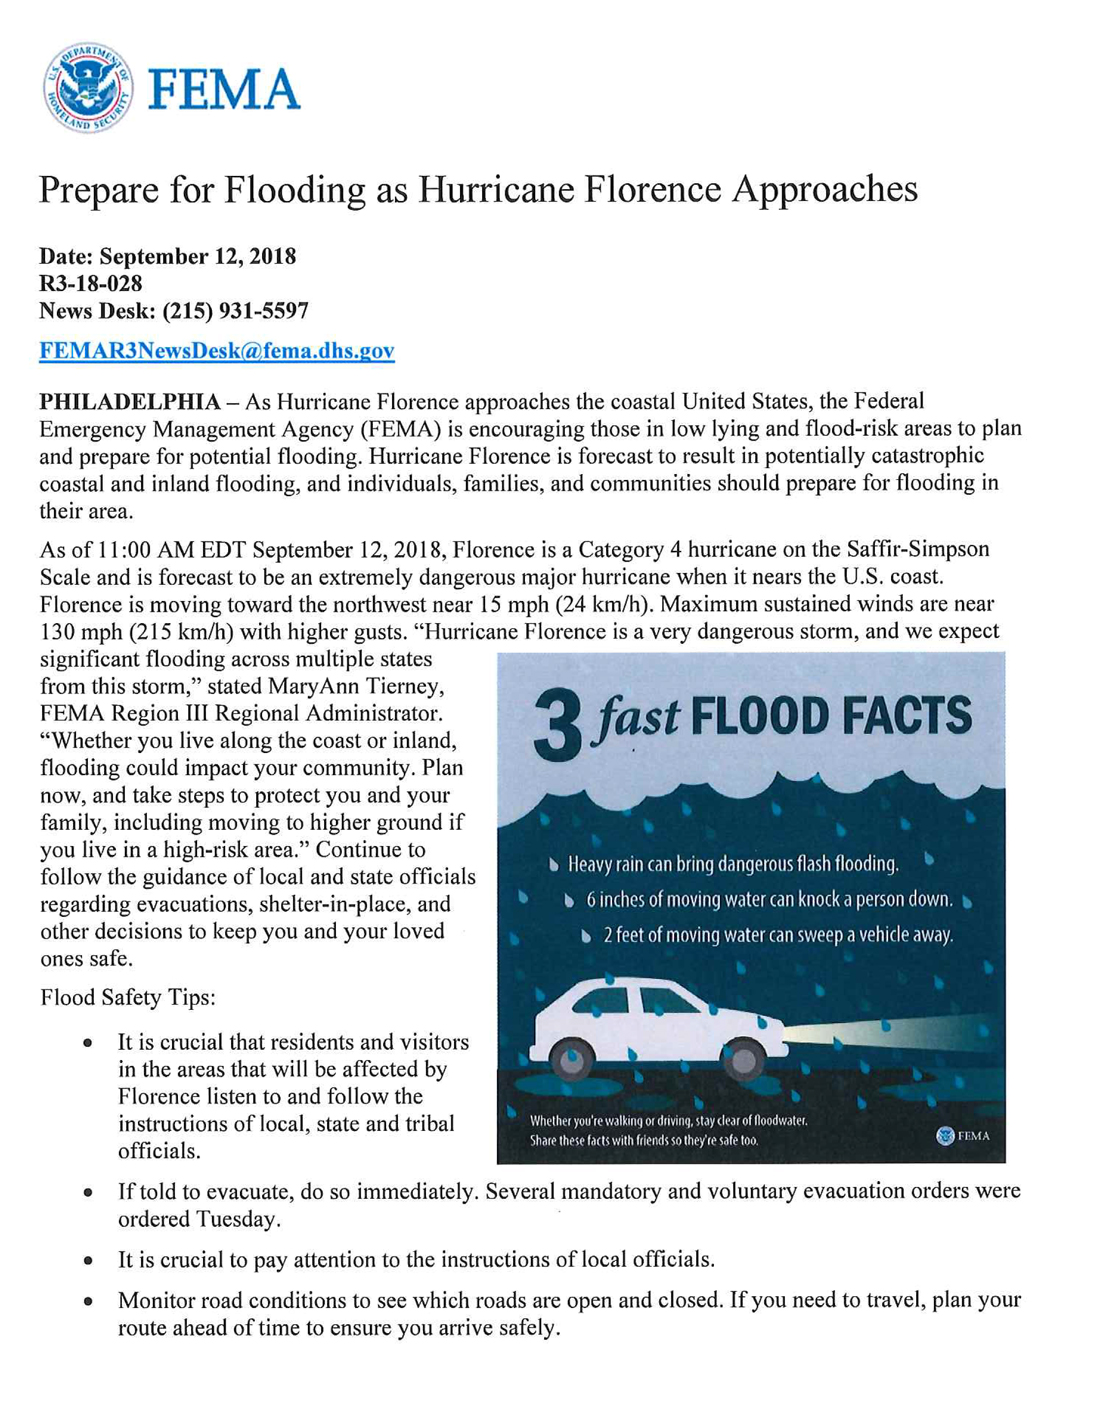 fema flood preparation